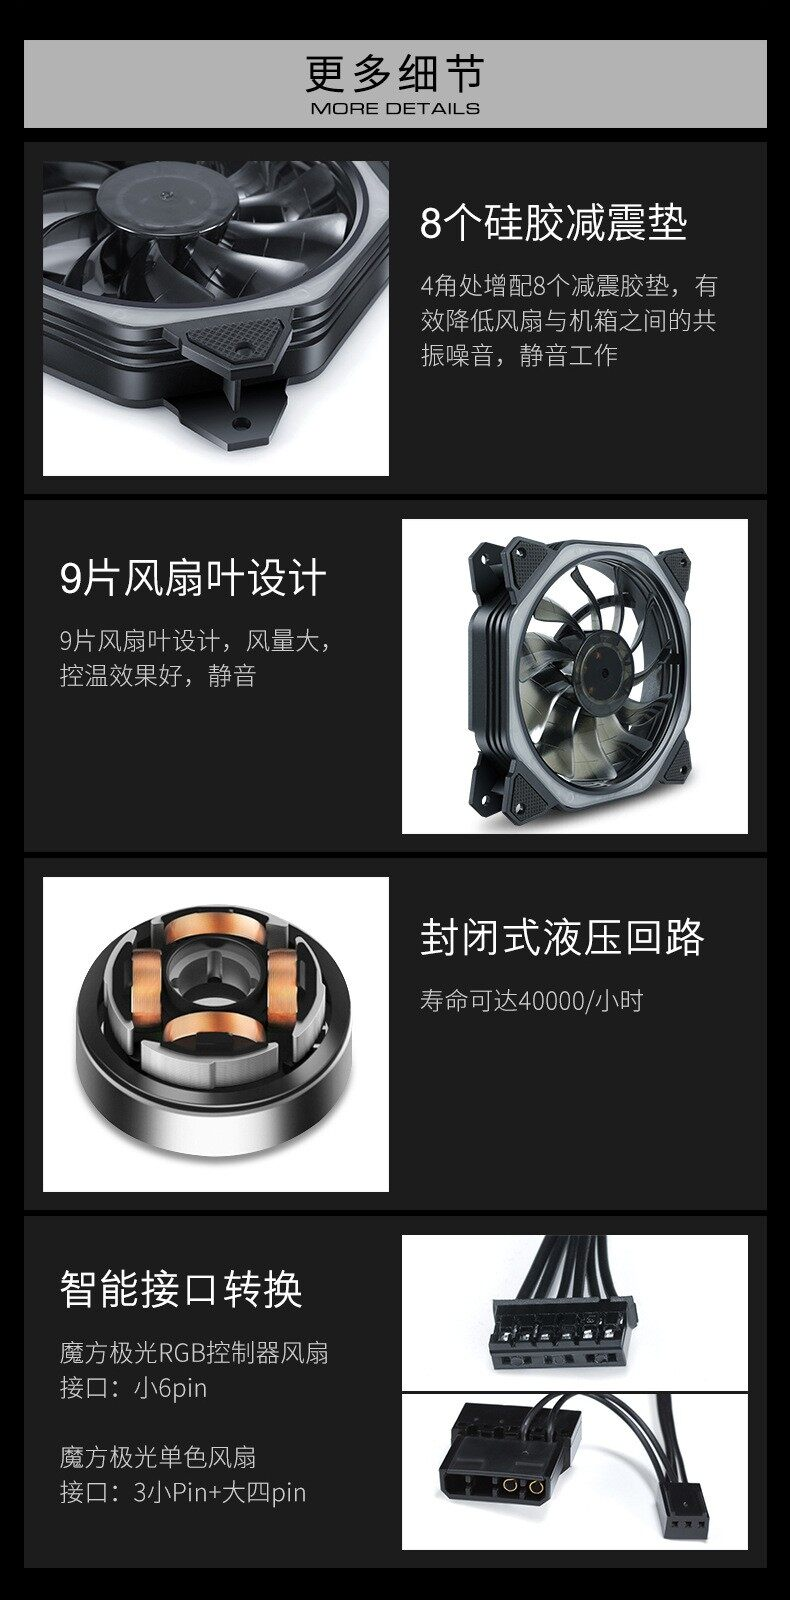 Best Selling [ Local Ready Stock ] RGB LED Cooling Fan 120mm with 12 Color for Desktop PC Cooling System & Custom